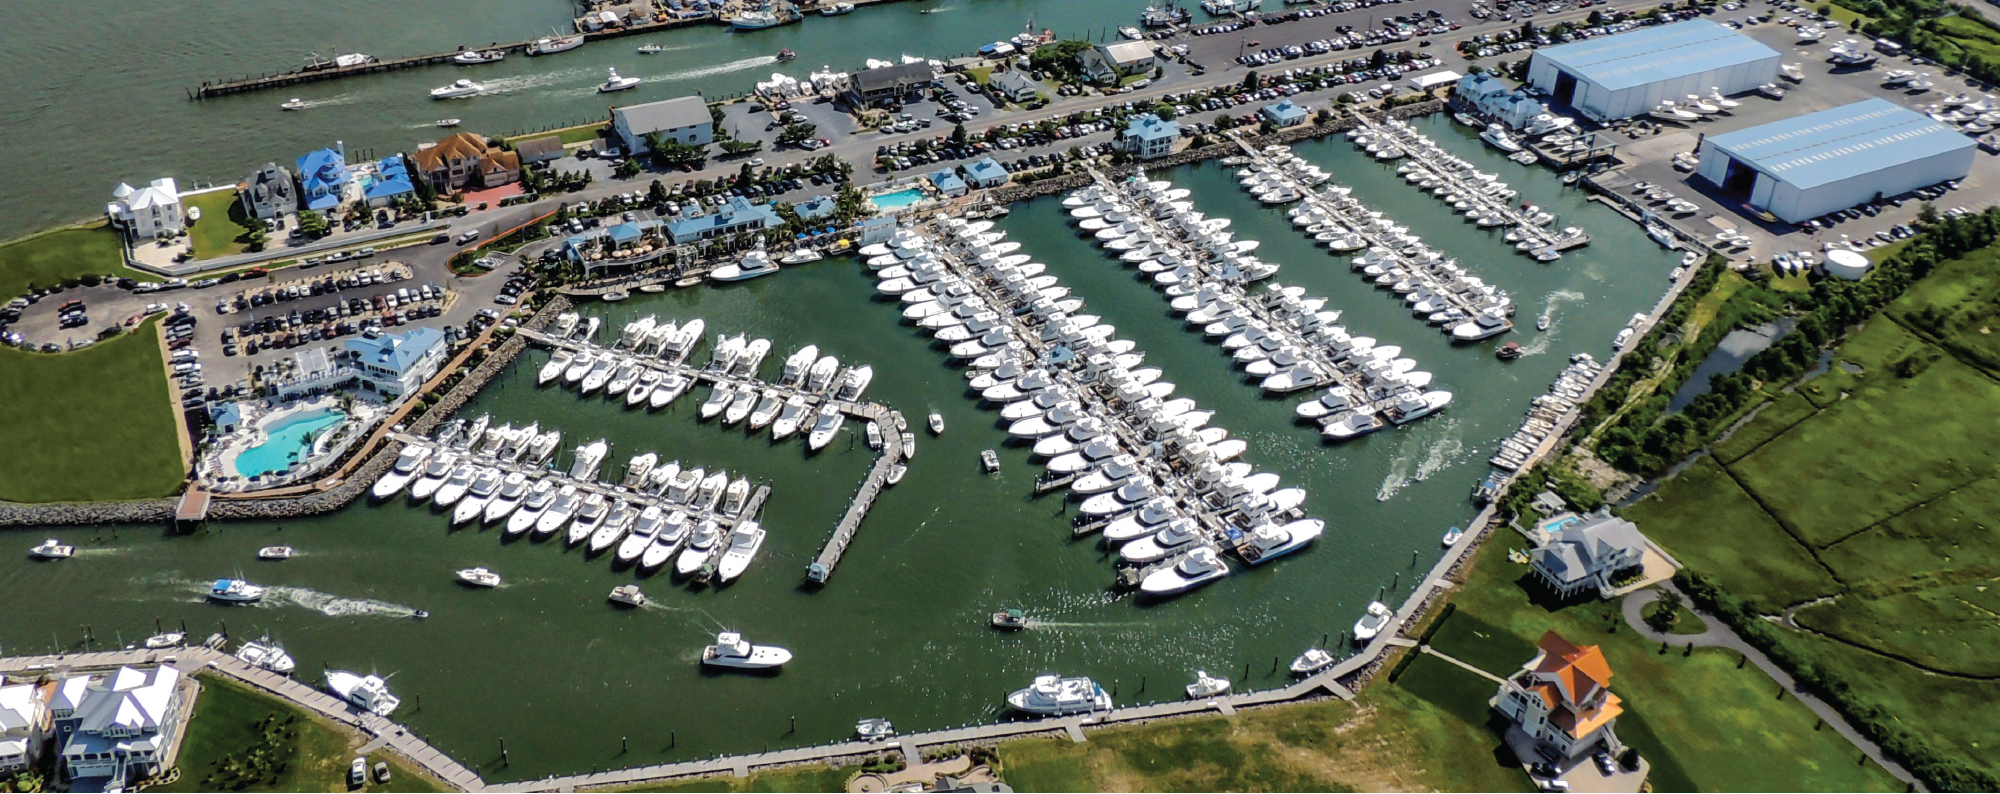 Aerial View of Sunset Marina, Ocean City MD